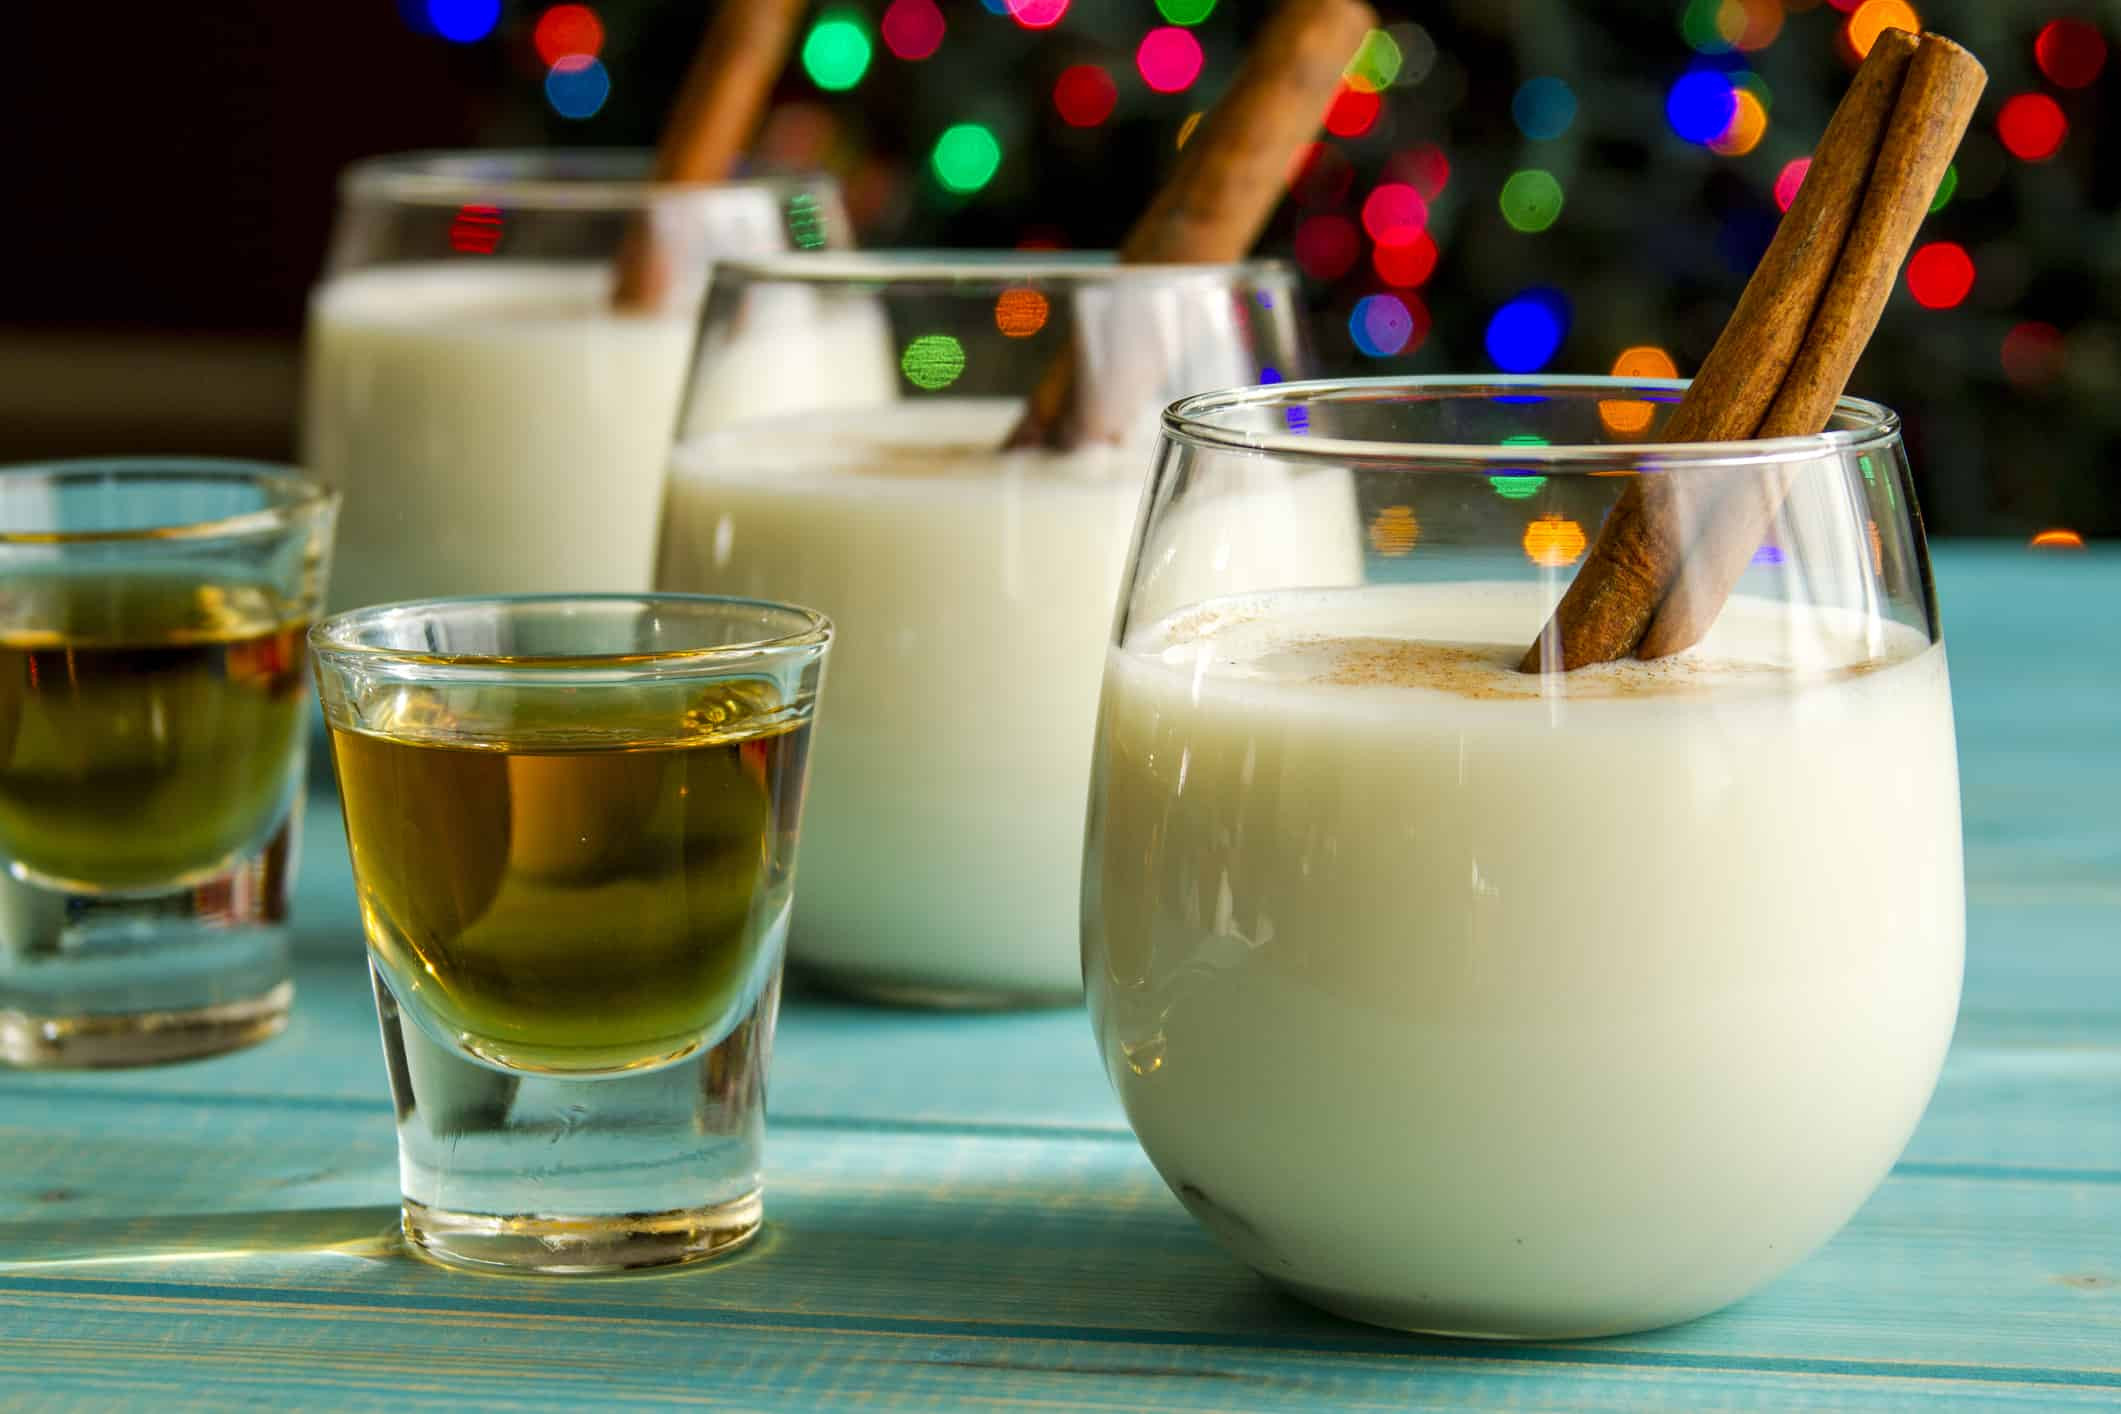 Eggnog Alcoholic Drinks  How To Make The Ultimate Eggnog Mixed Drink